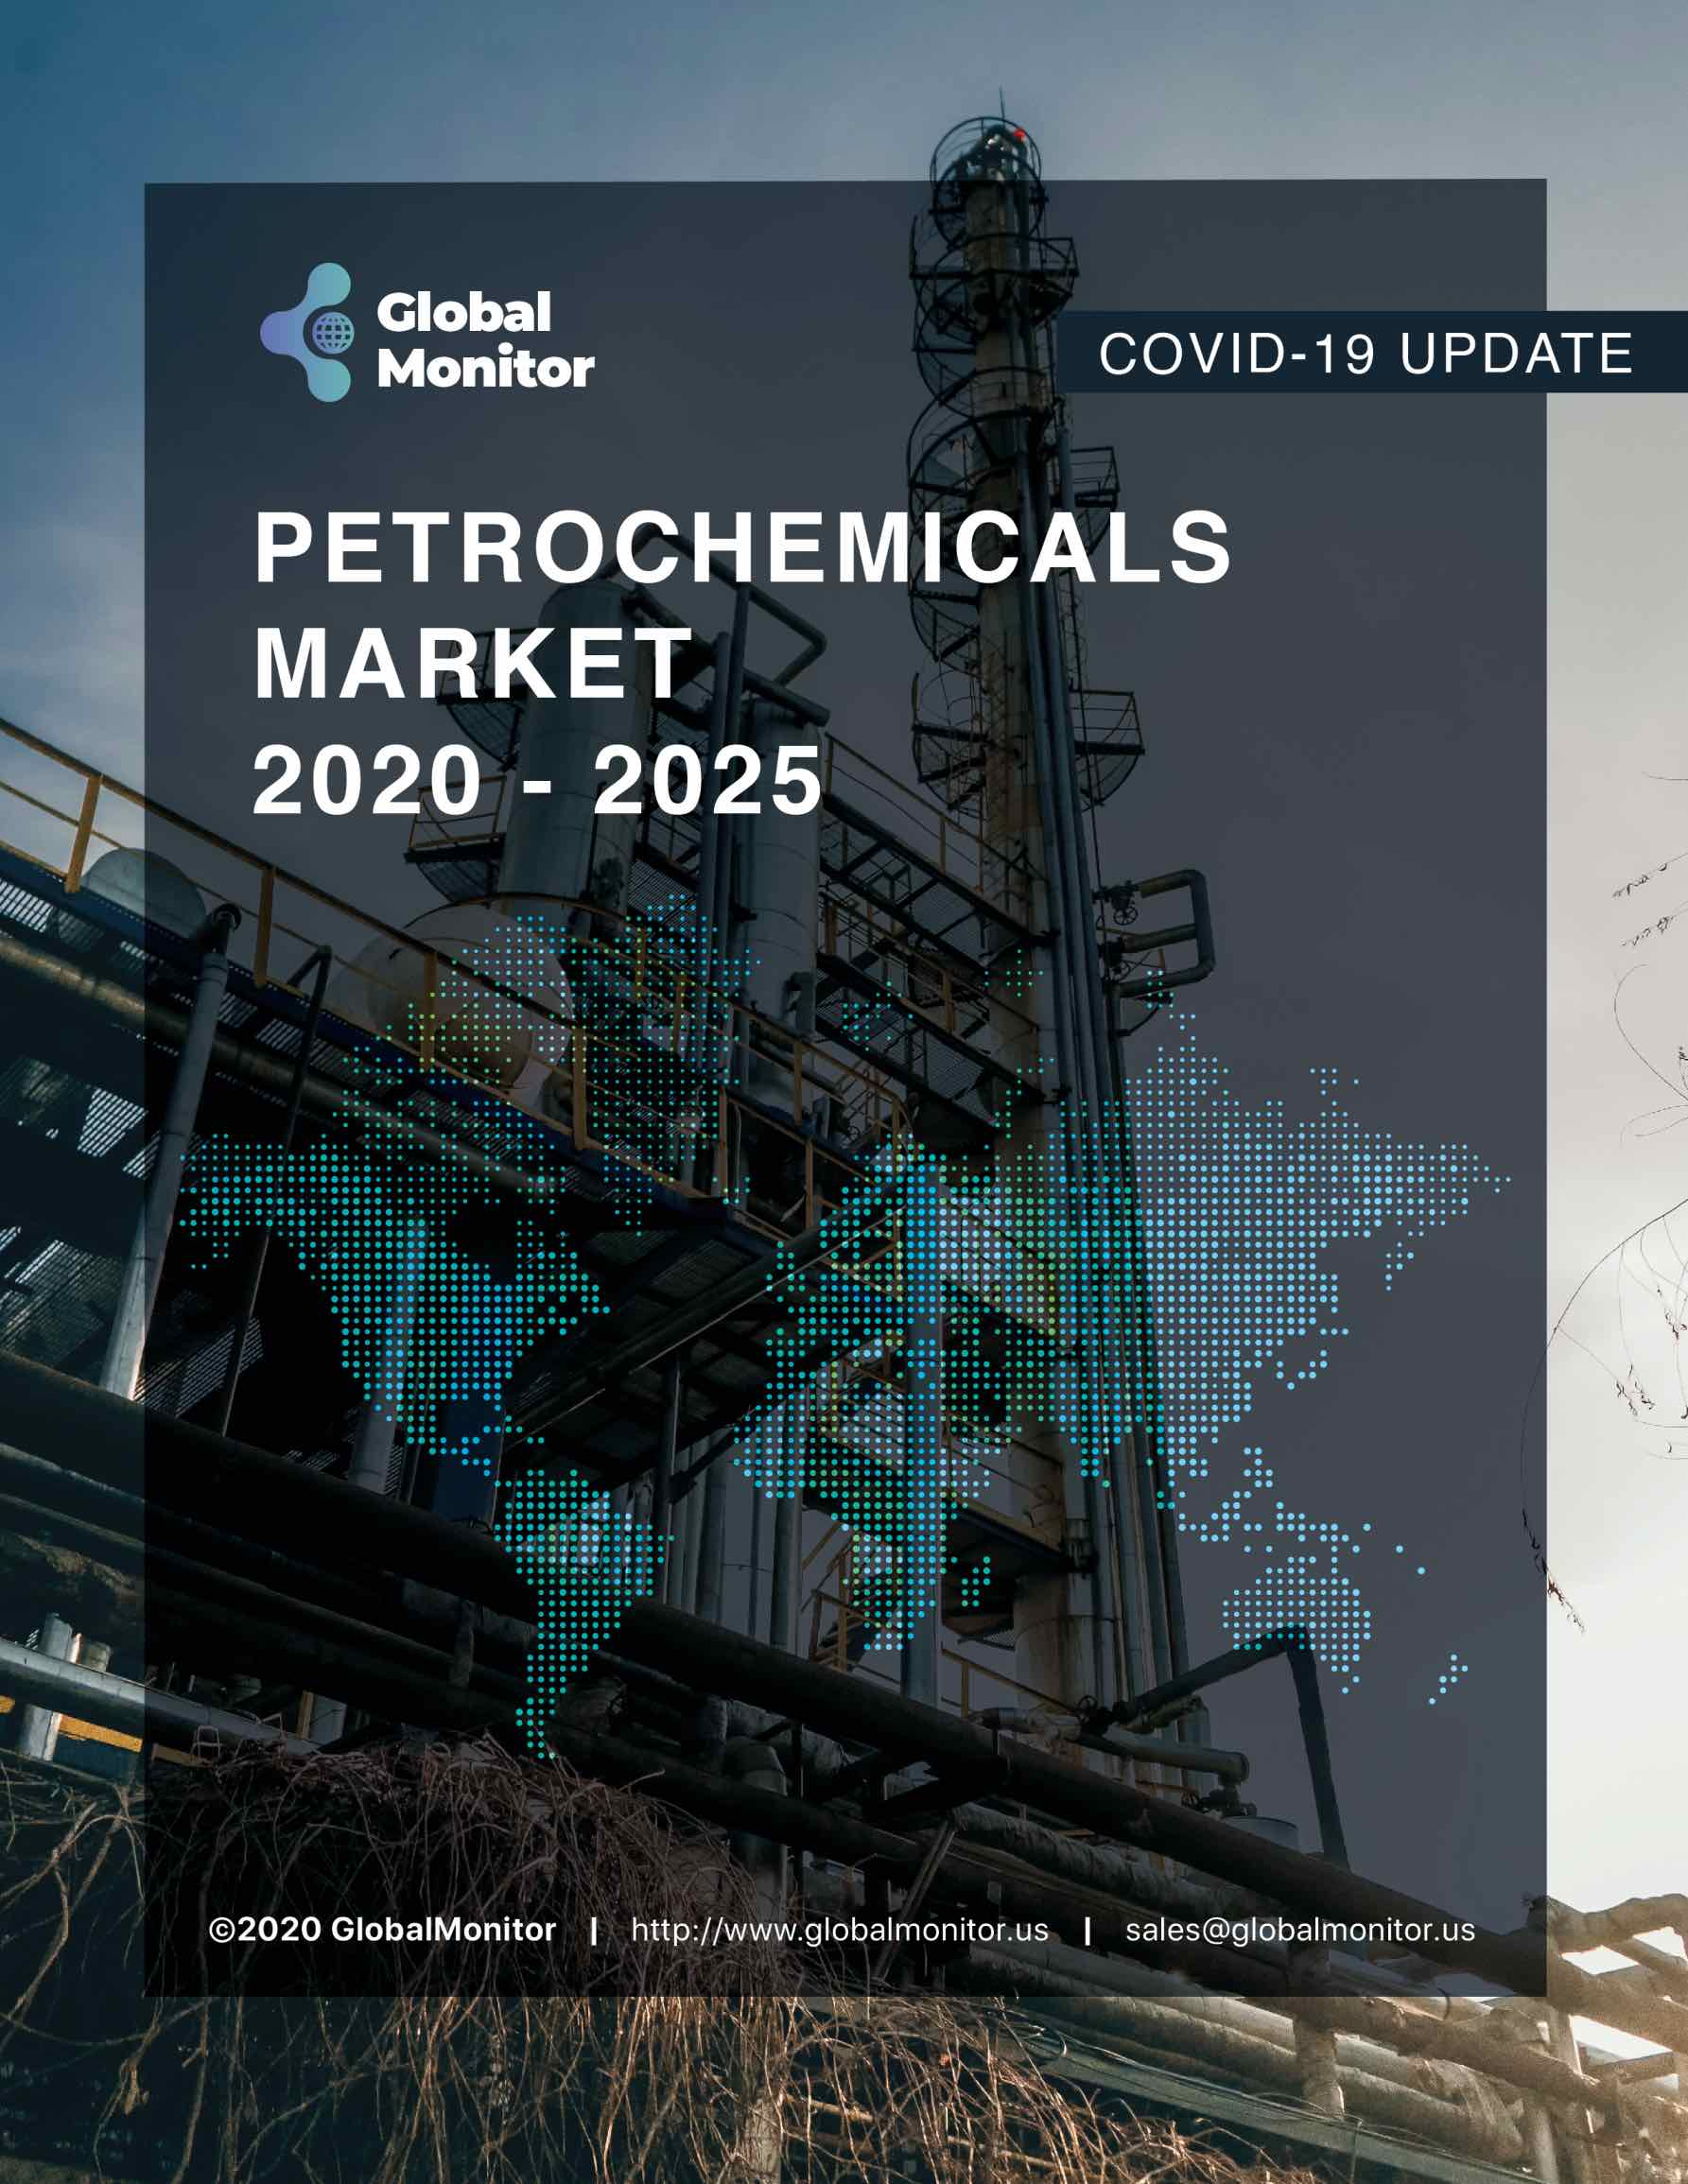 China Petrochemicals Market Report With COVID-19 Analysis (2020-2025)